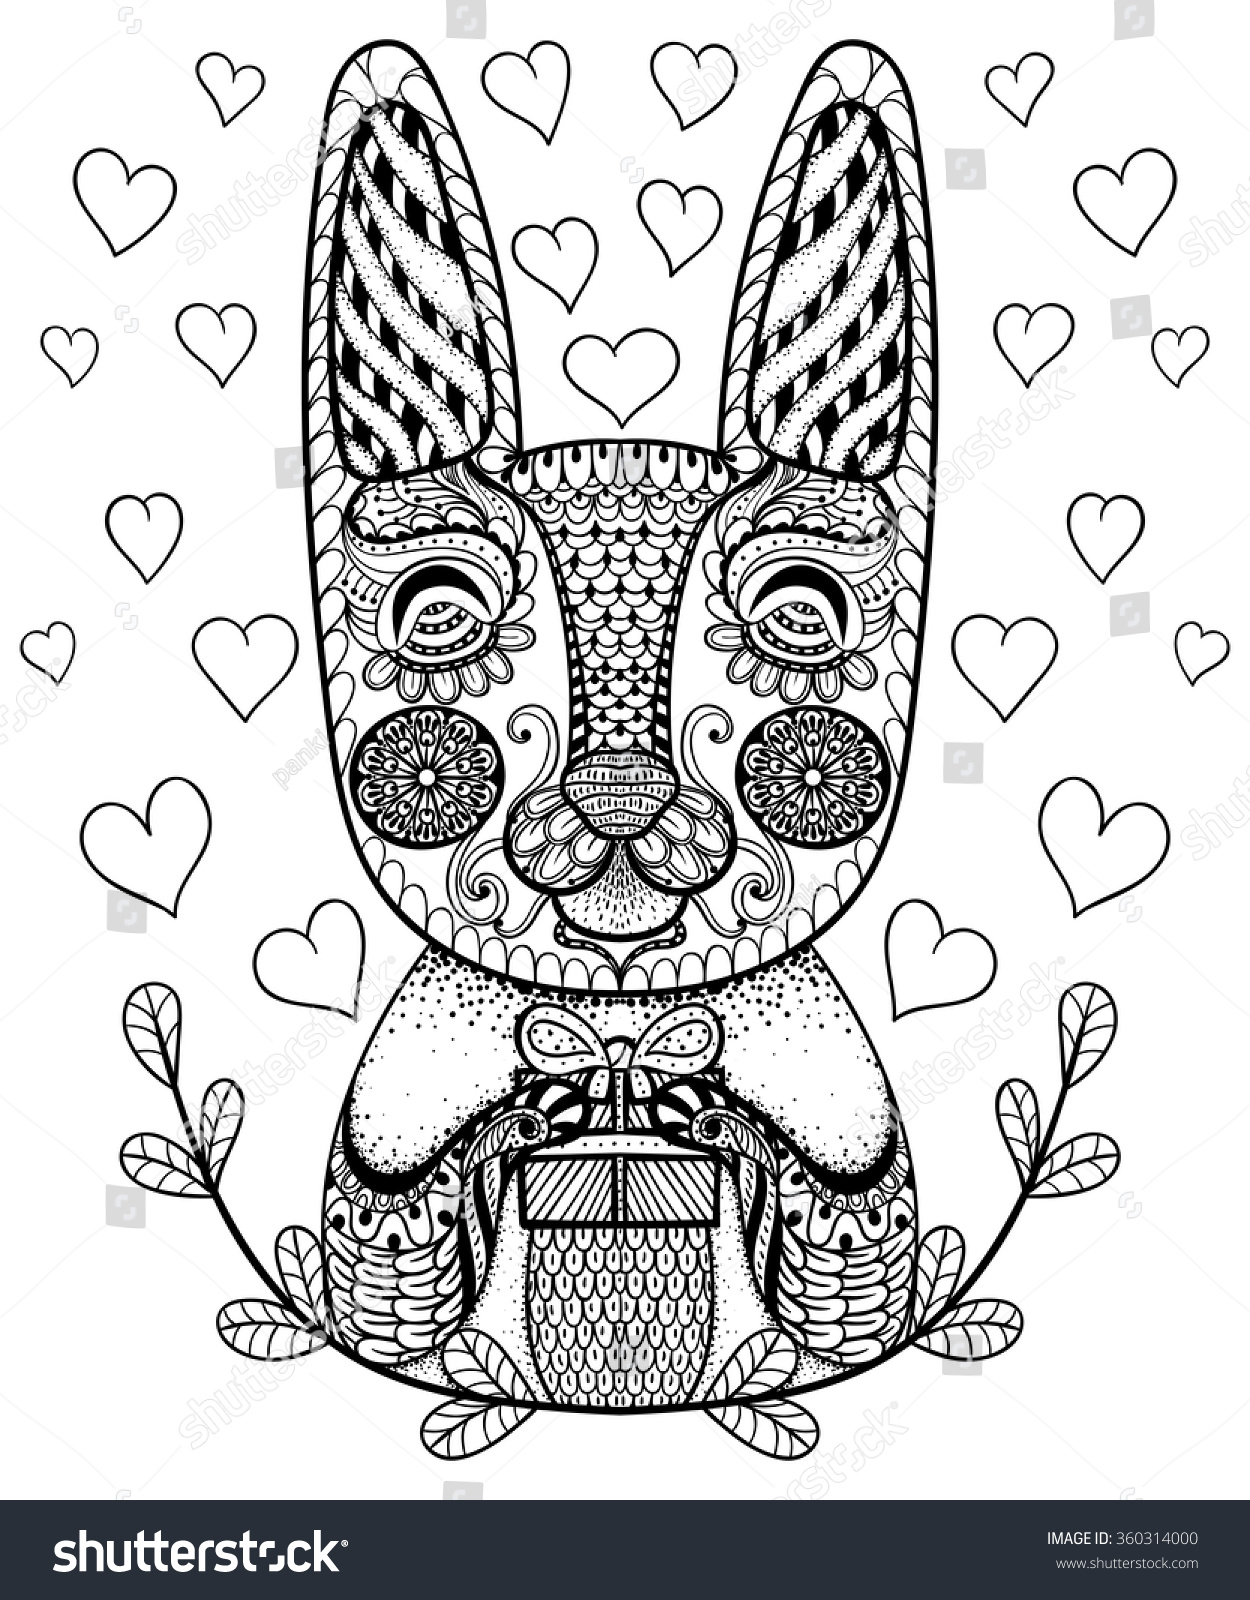 Hand drawn easter rabbit gift hearts stock vector 360314000 hand drawn easter rabbit with gift and hearts in doodle patterned bunny in zentangle tribal negle Gallery